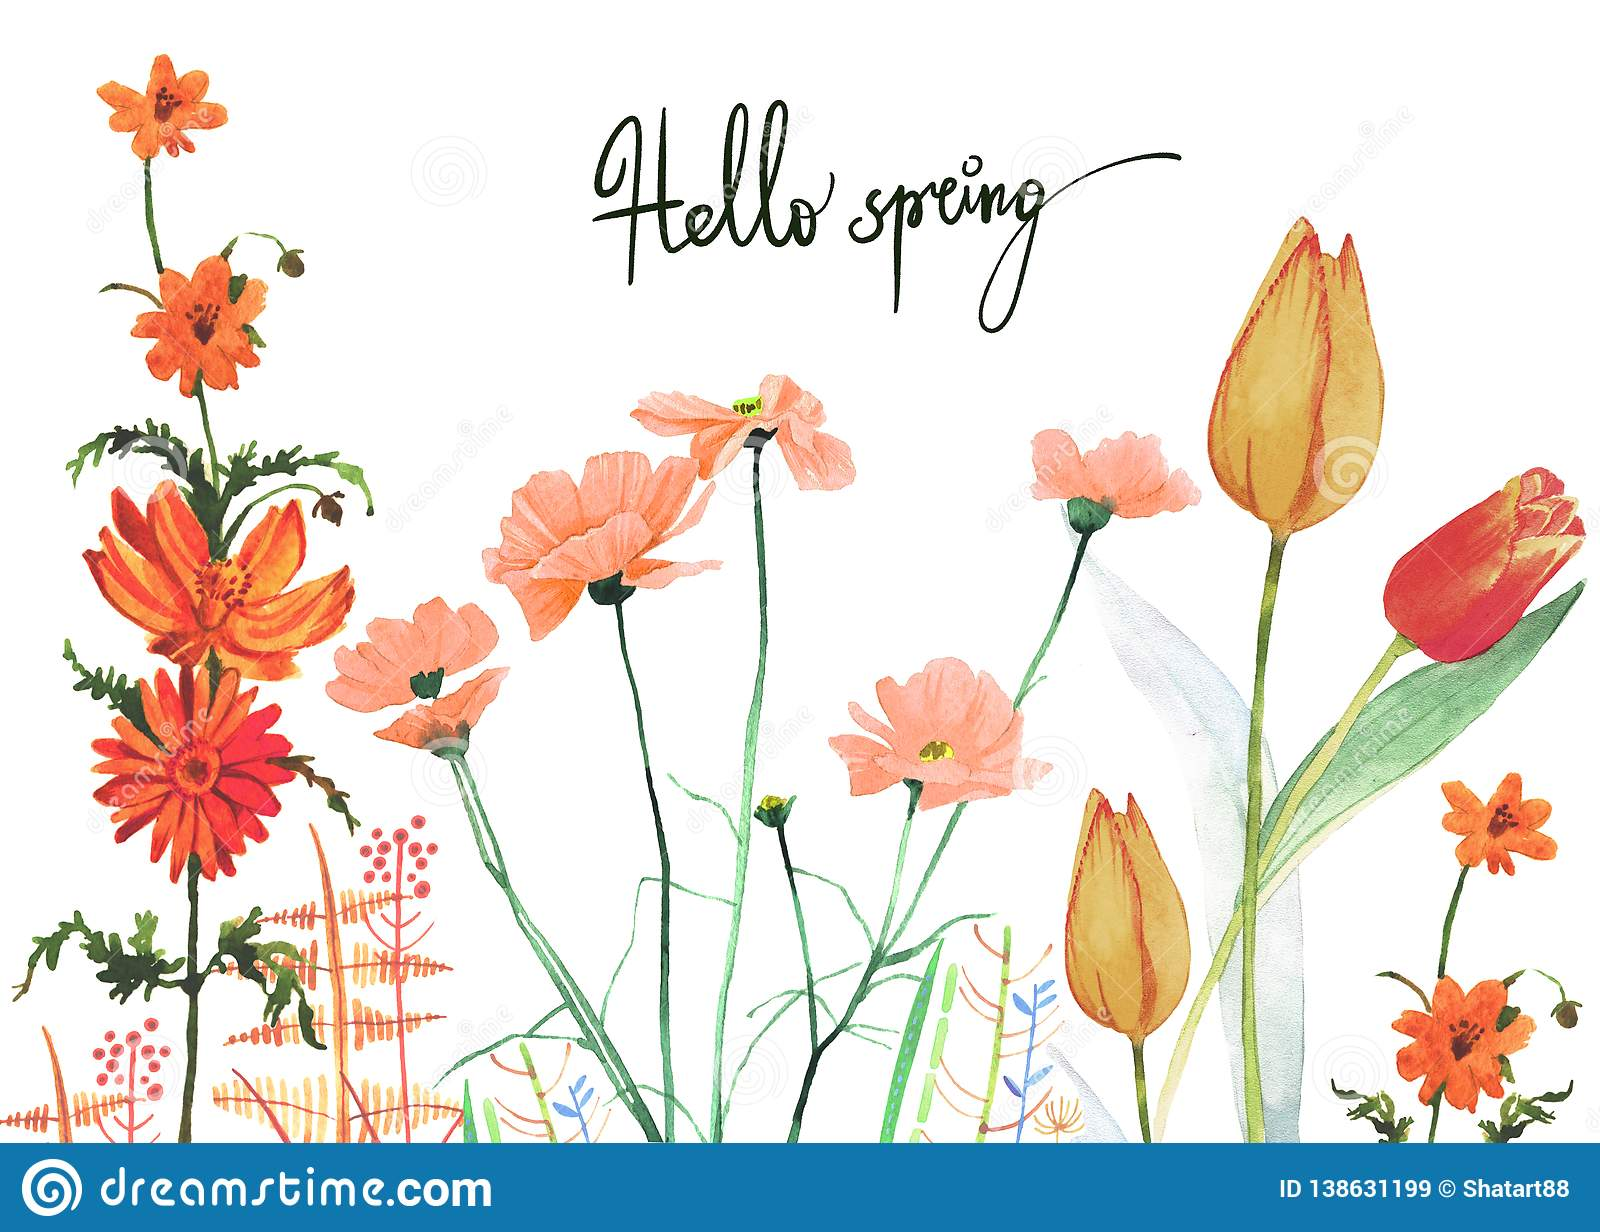 Watercolor Spring Colorful Flowers Growing Illustration Stock Illustration Illustration Of Flowers Design 138631199